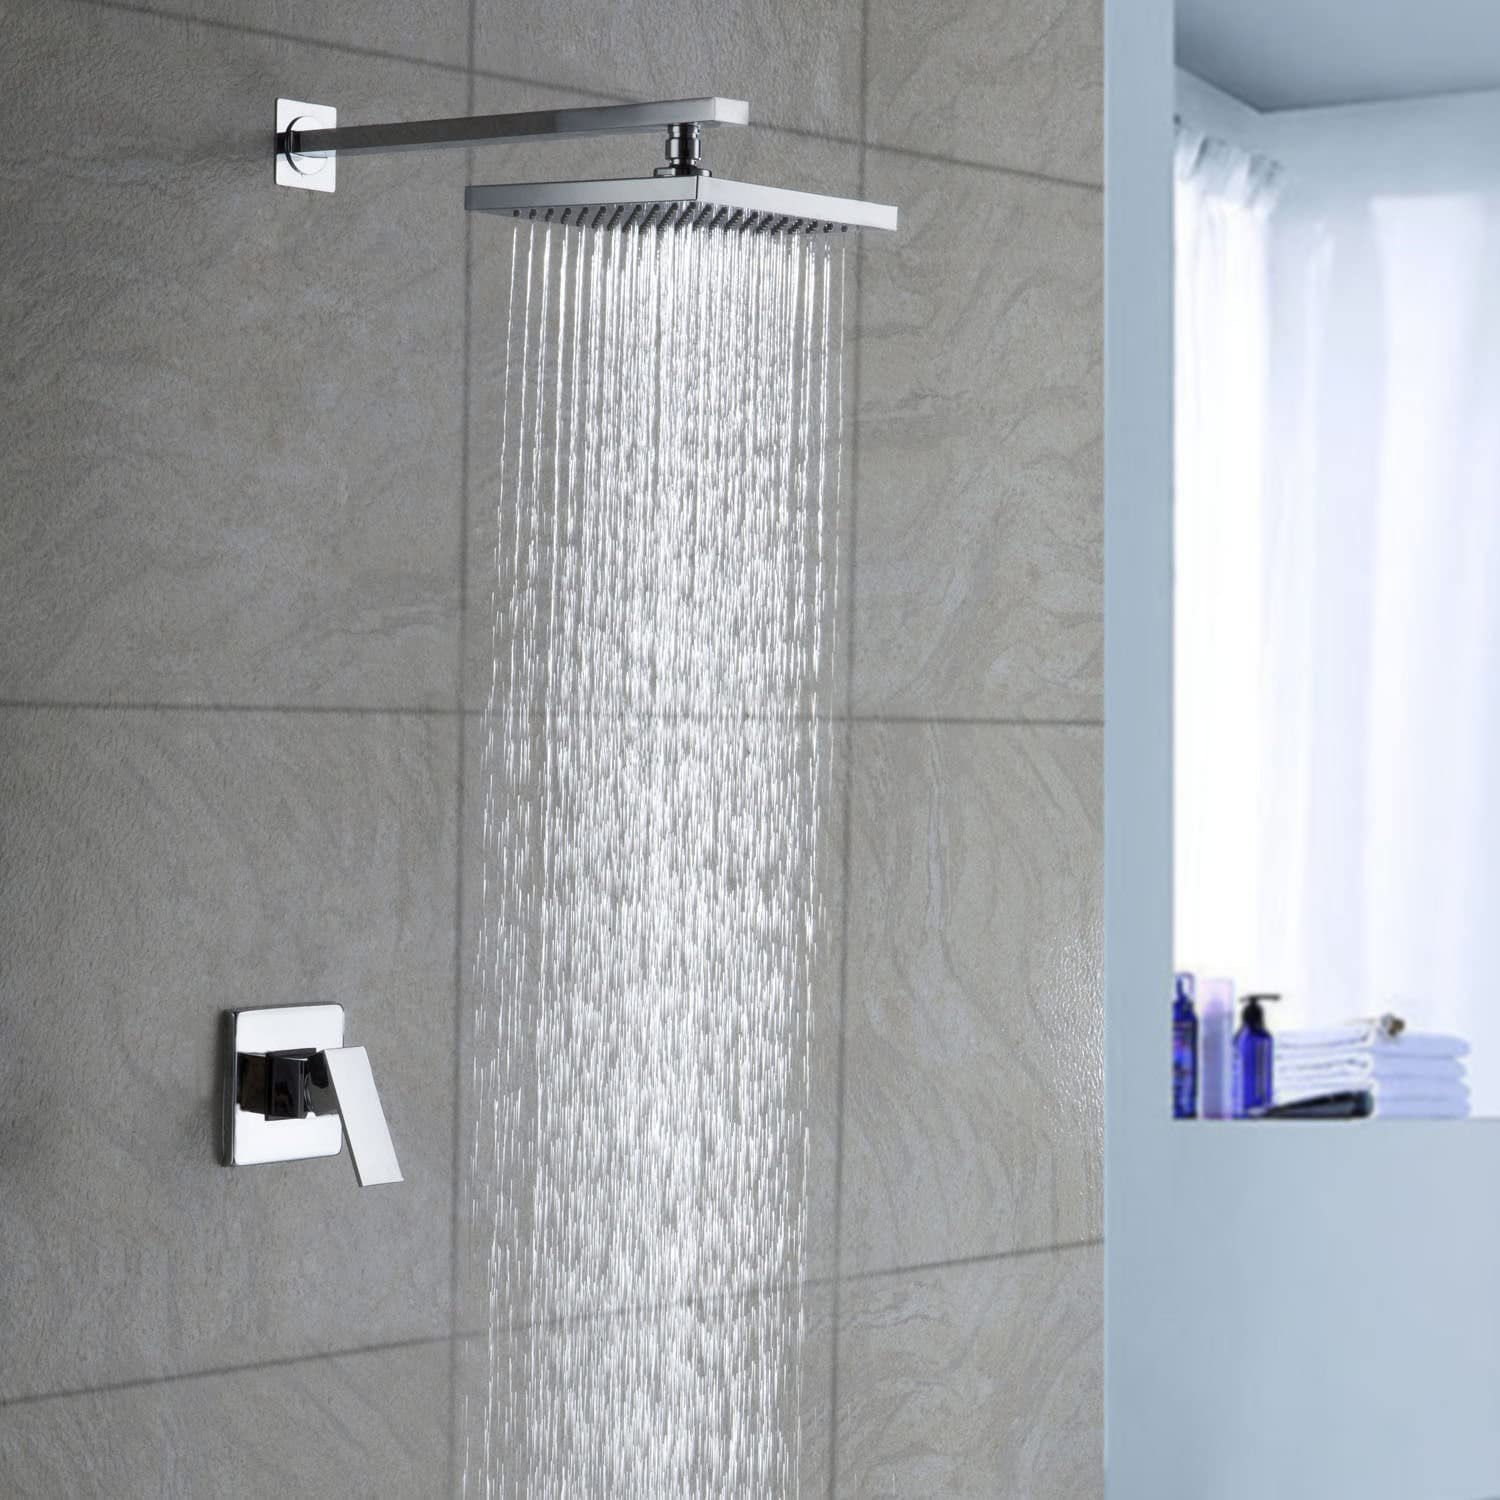 Concealed Chrome Finish Shower Faucet